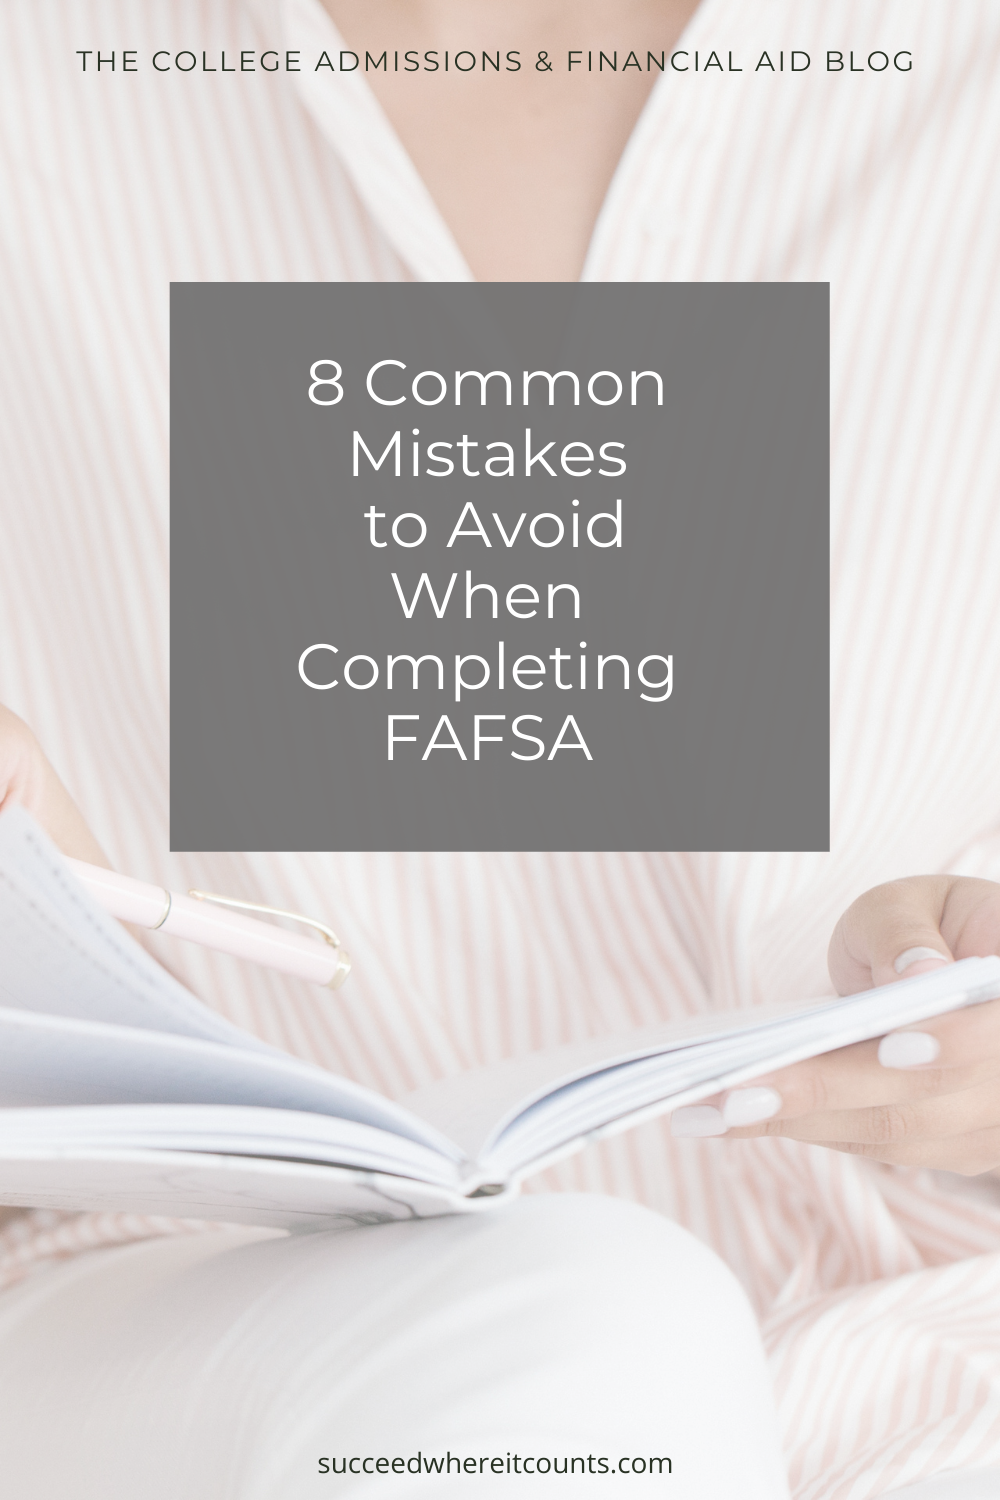 8 Common Mistakes to Avoid When Completing FAFSA